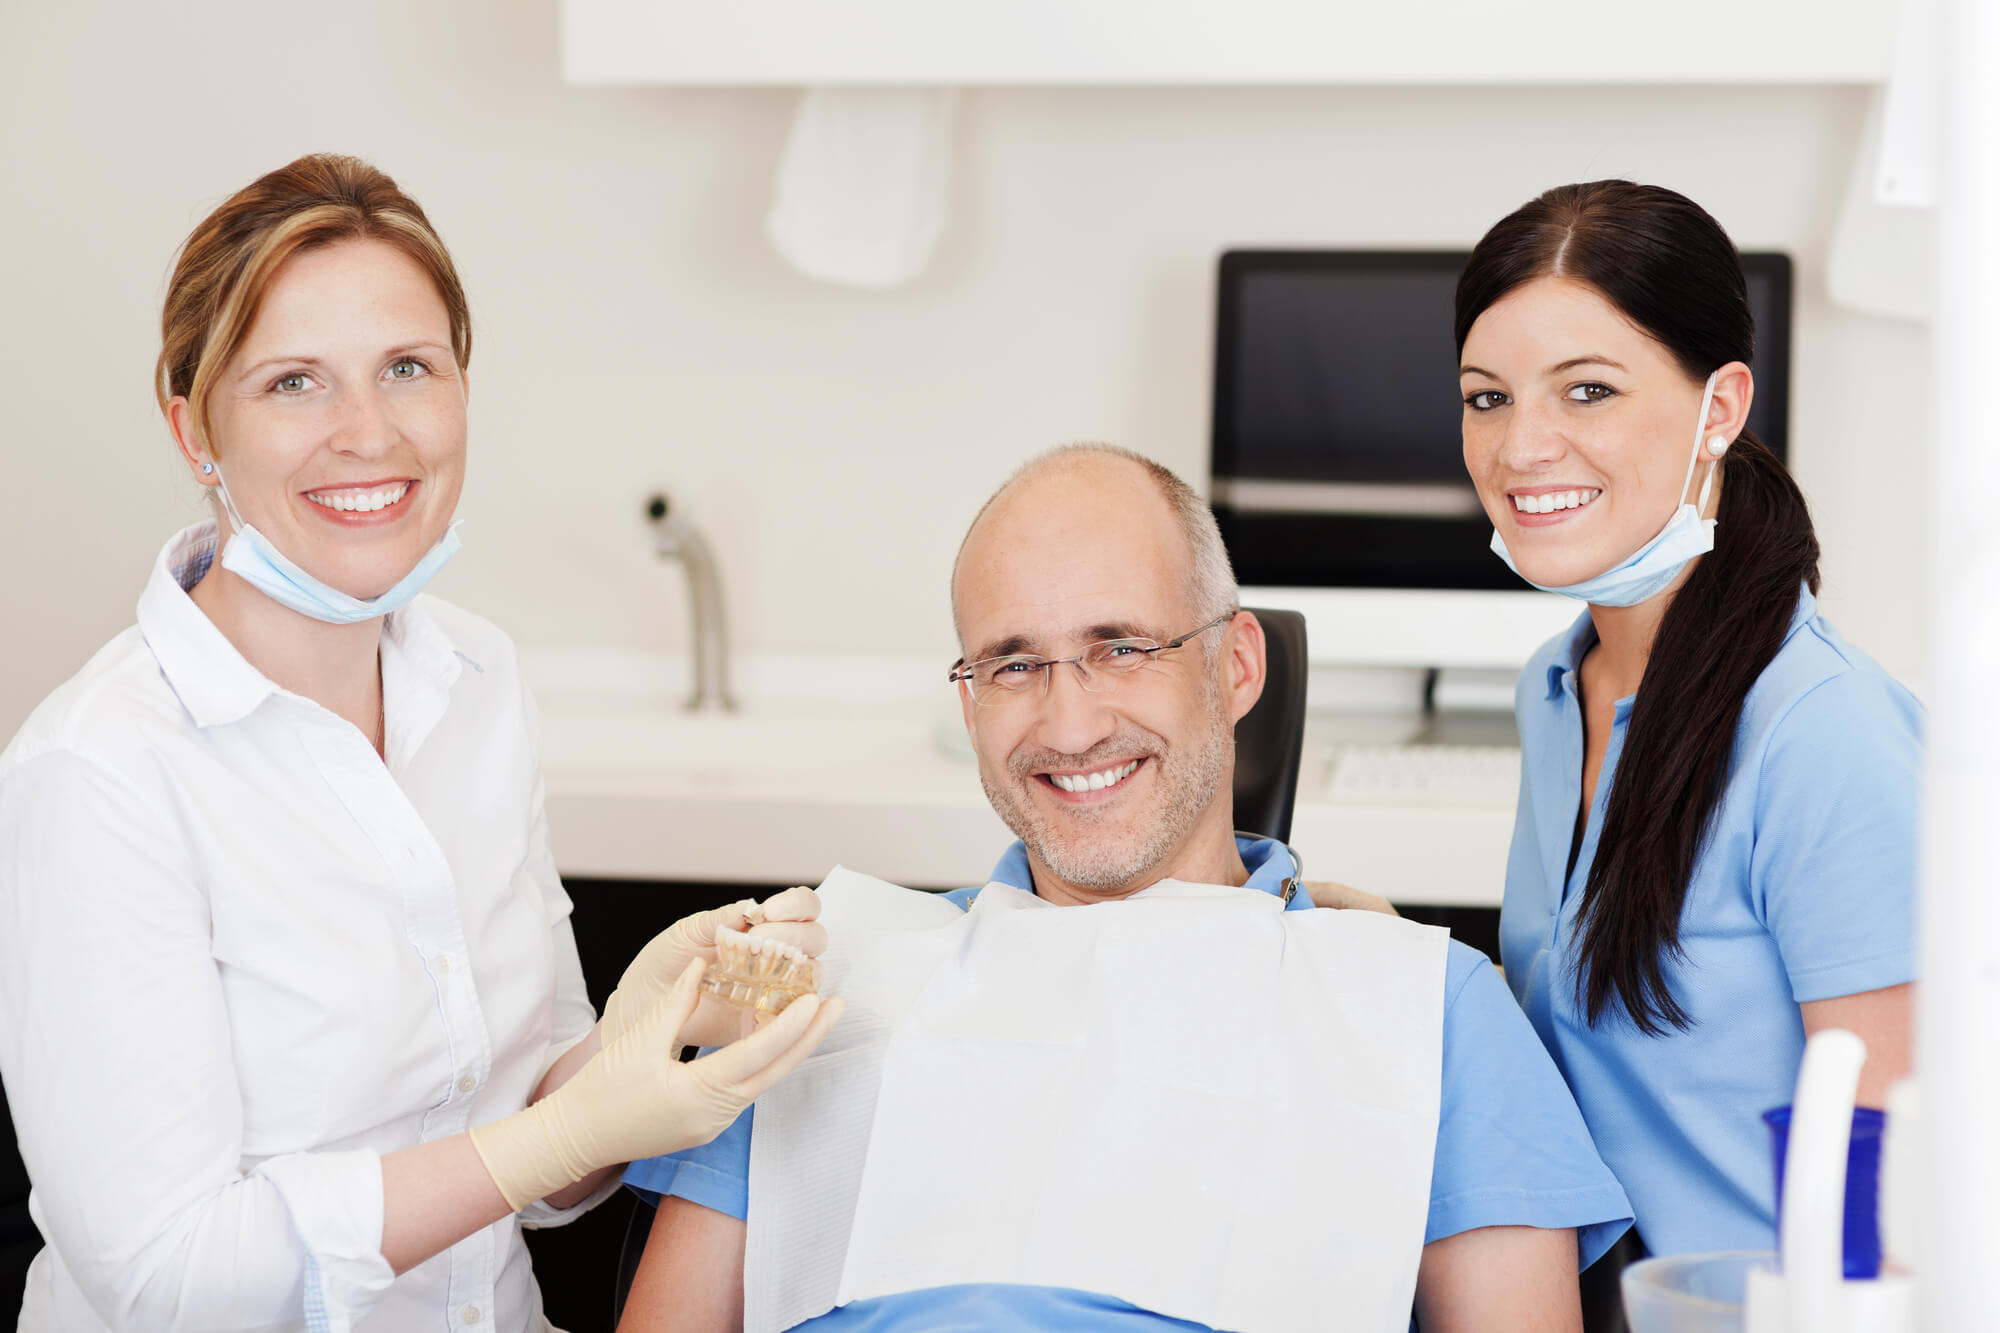 Where can I get Dental Implants Miami?